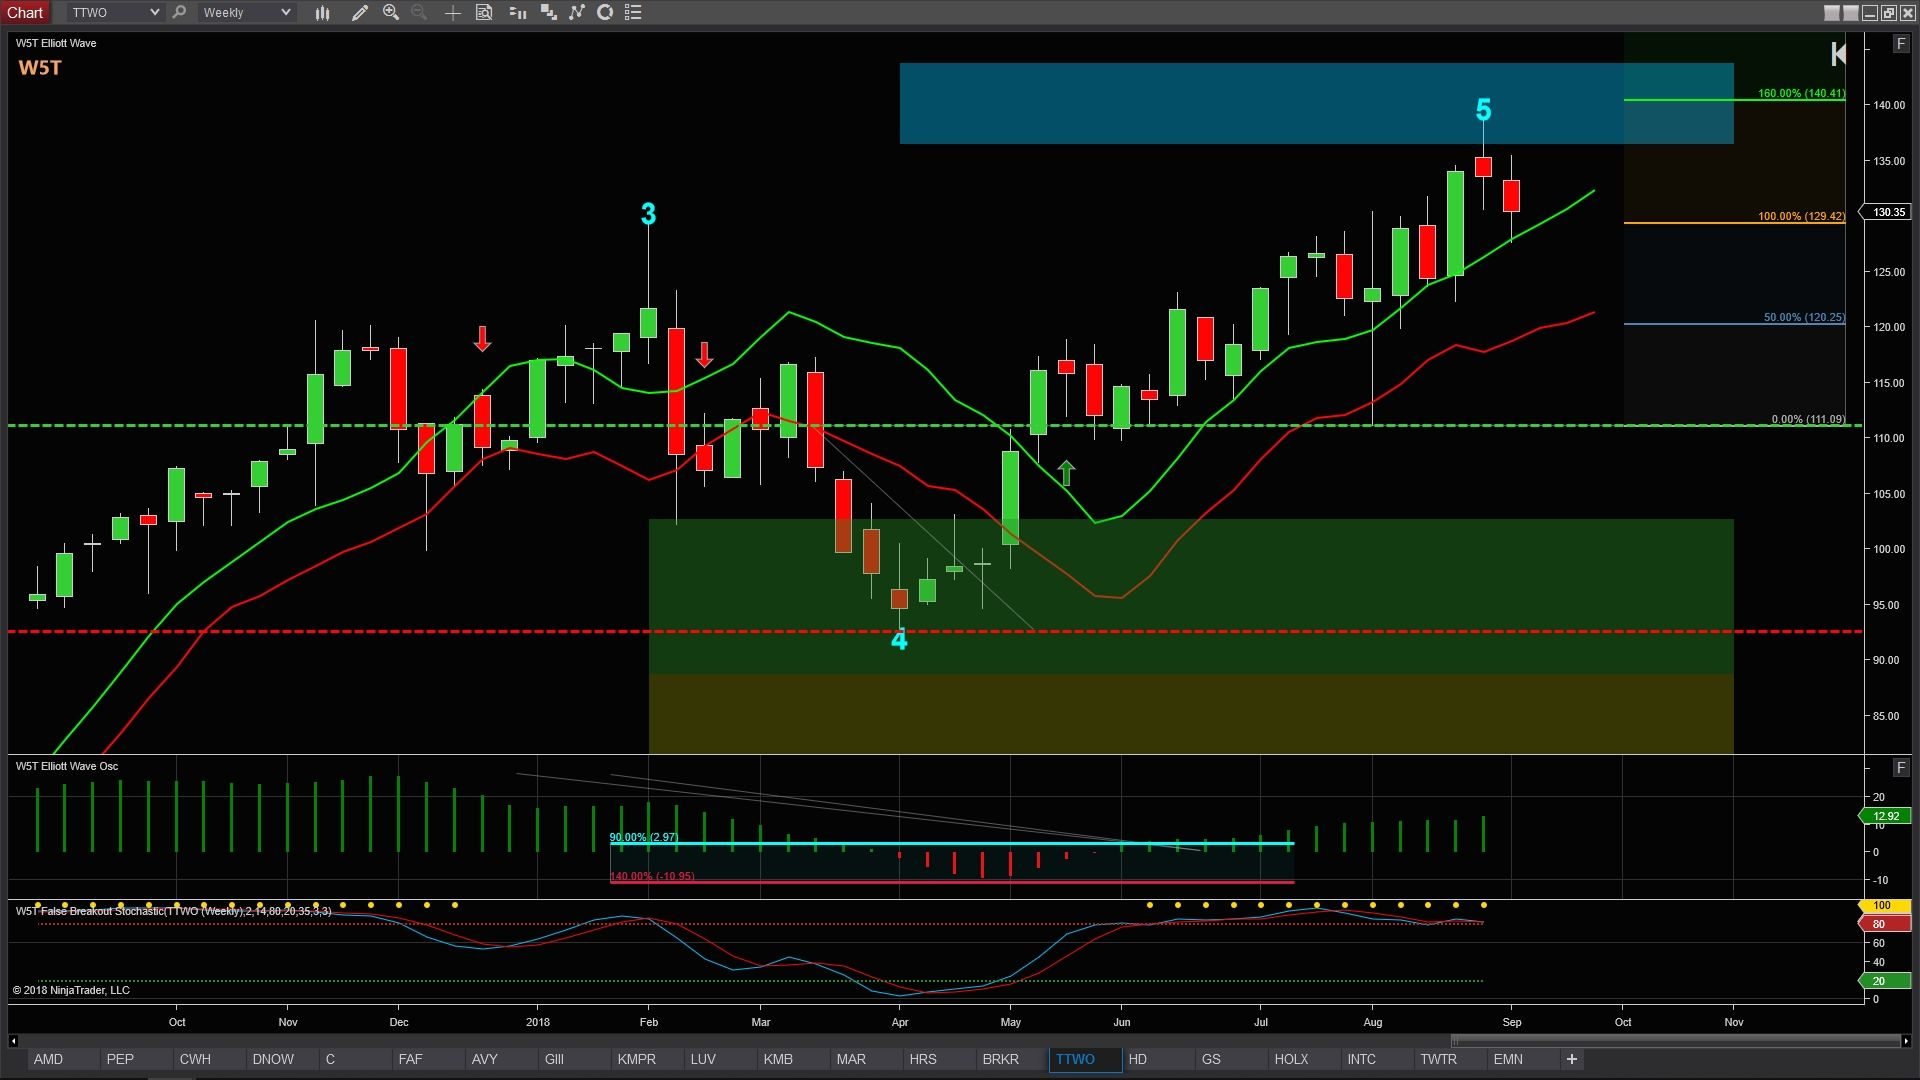 Image of ttwo chart with price hitting 5th wave target for